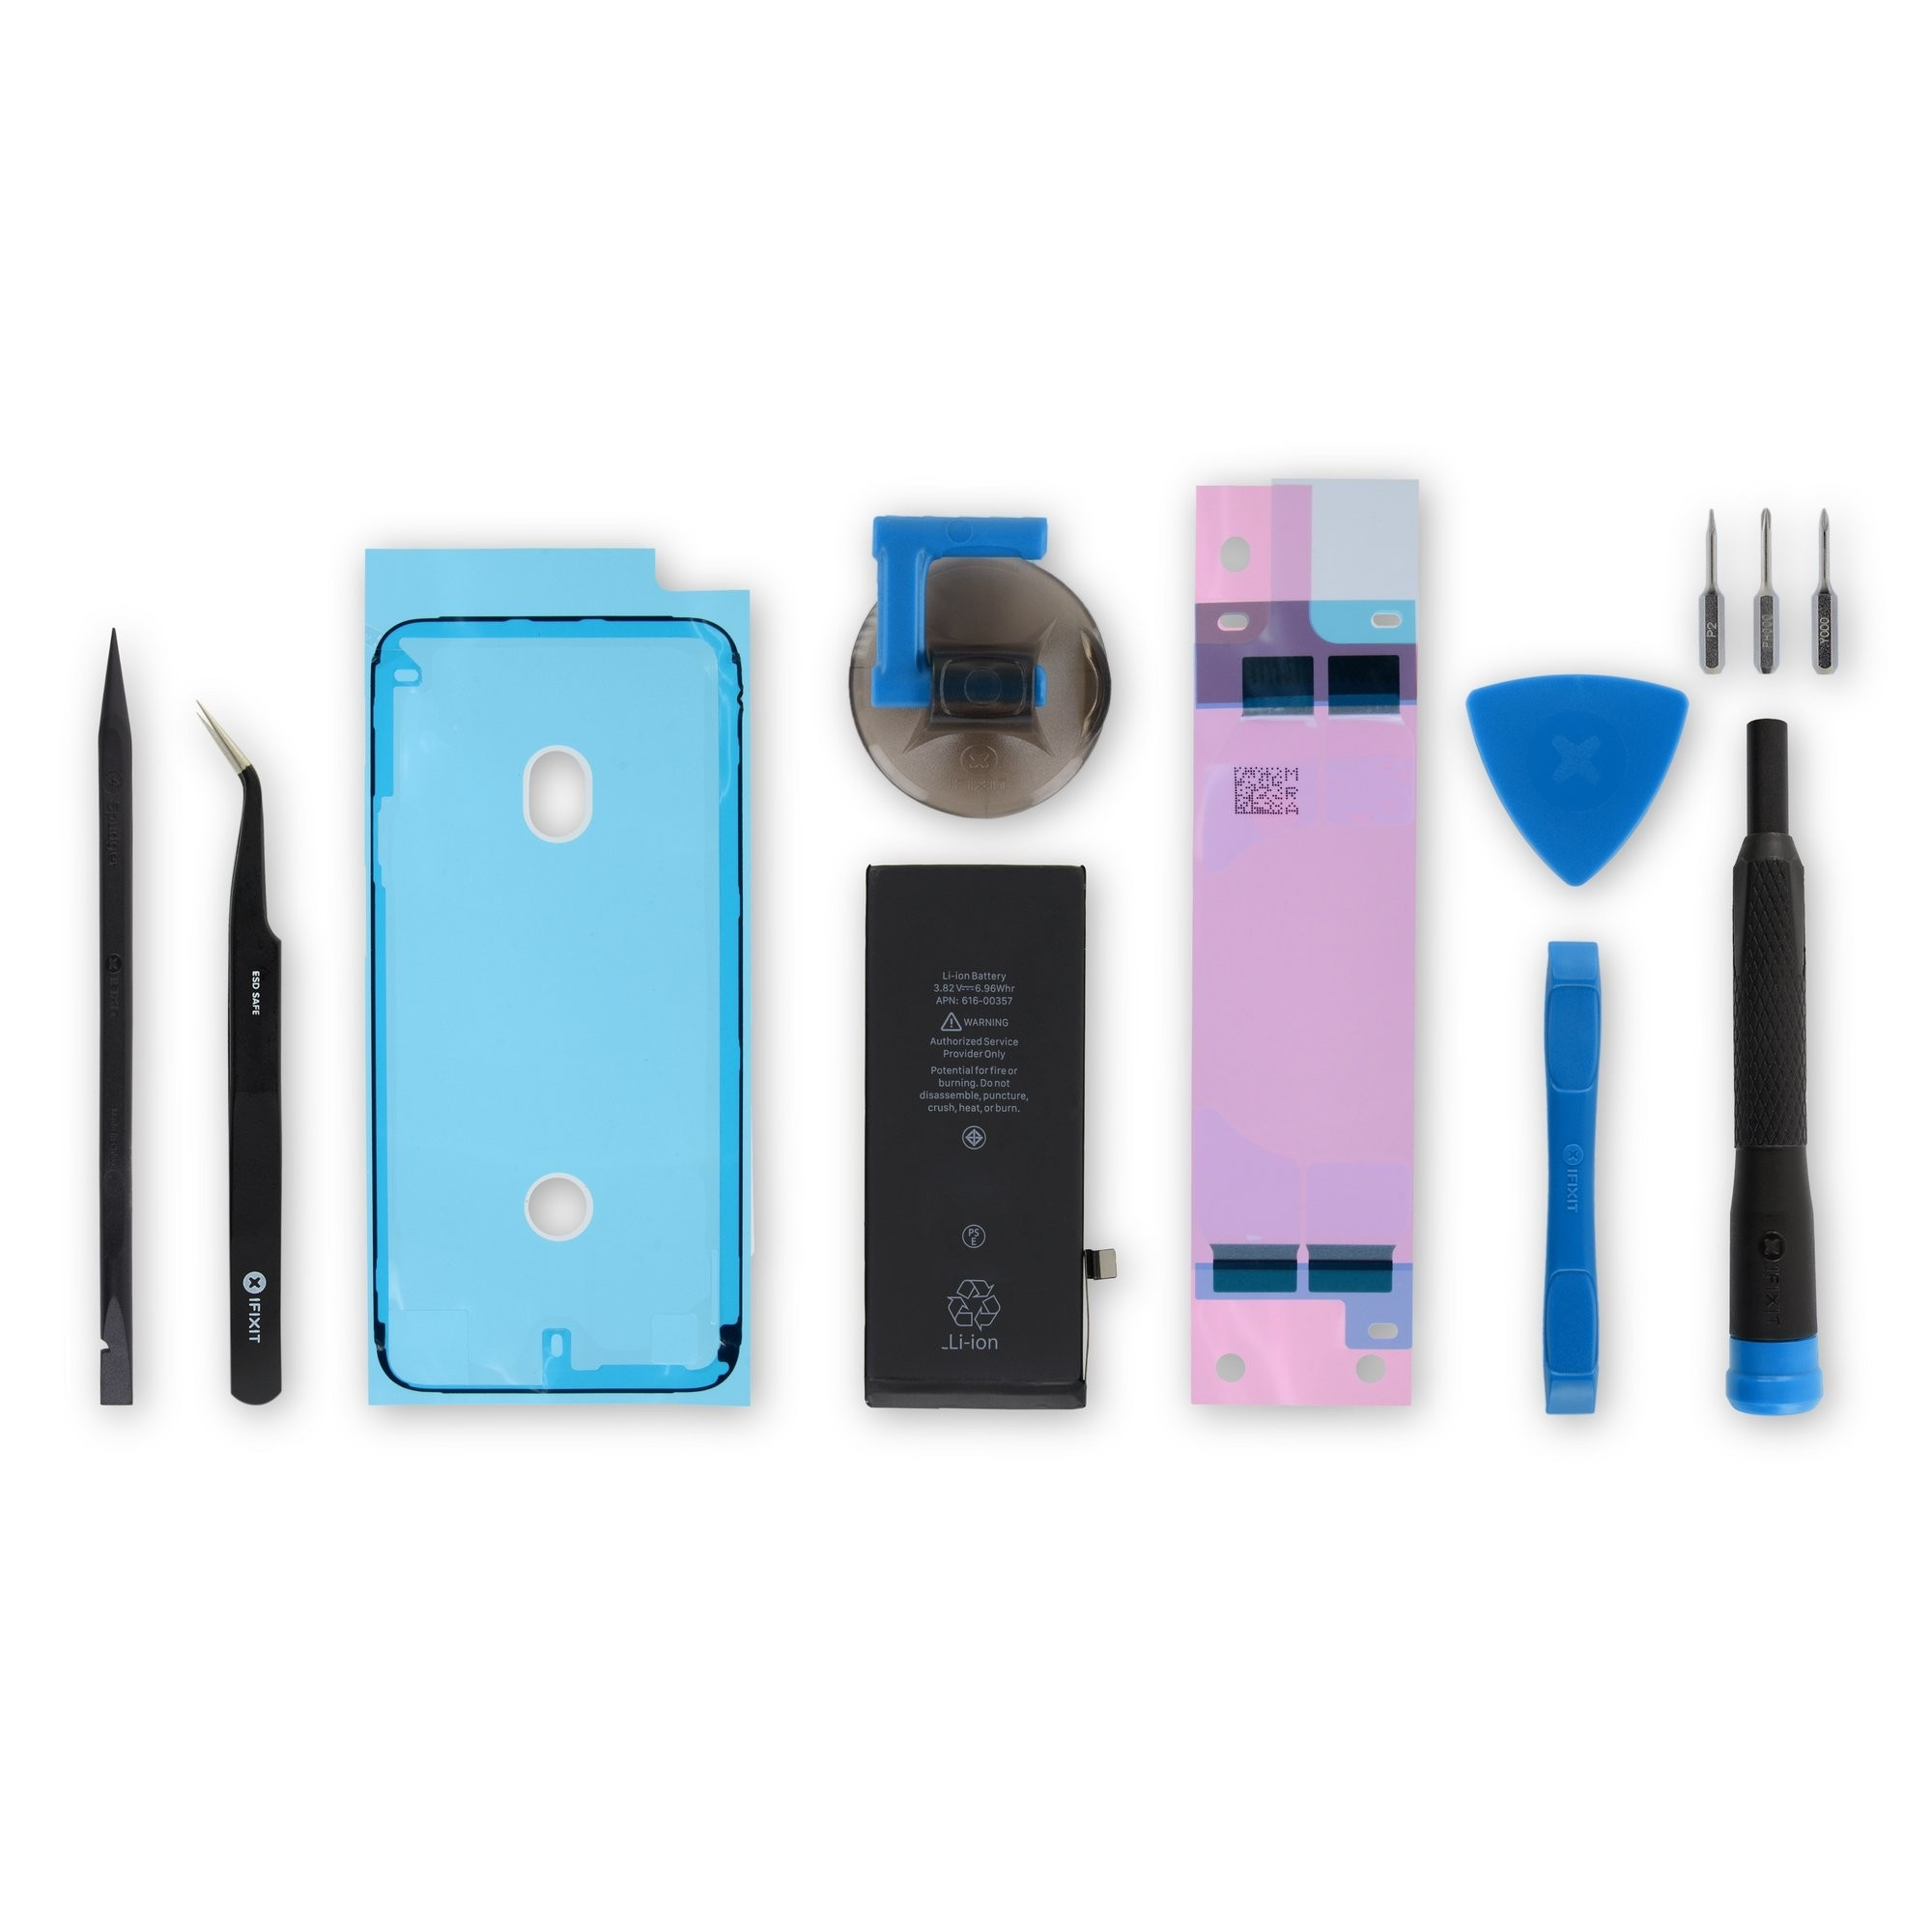 iFIxit iPhone 8 Replacement Battery, Fix Kit - New, IF371-001-4